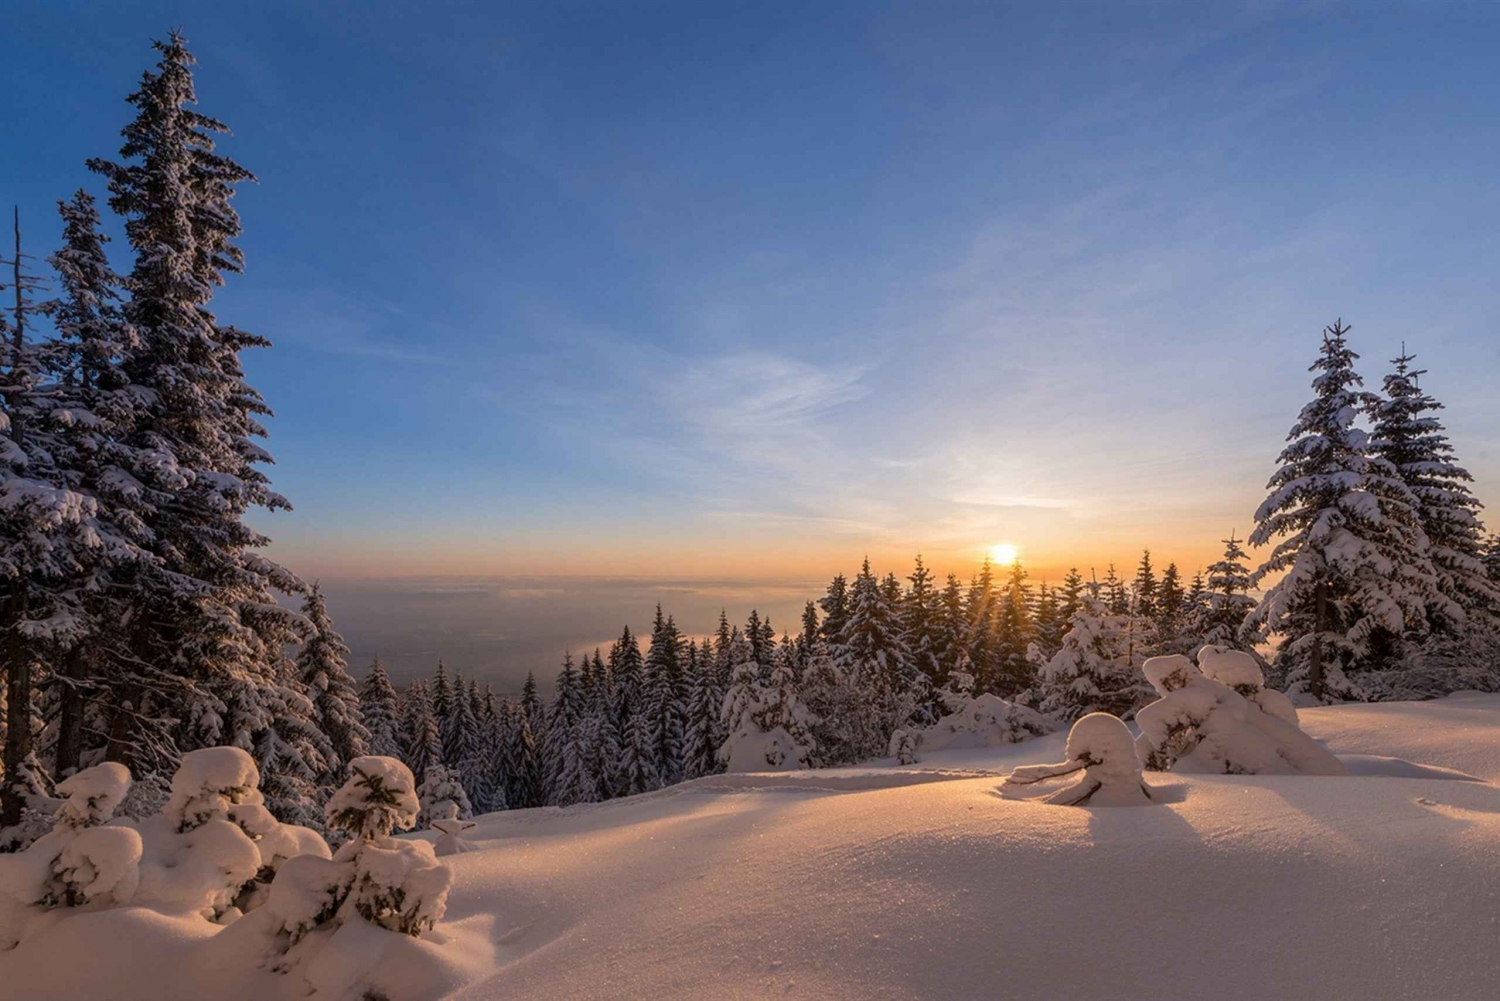 From Sofia: Snowshoe Hike on Vitosha Mountain